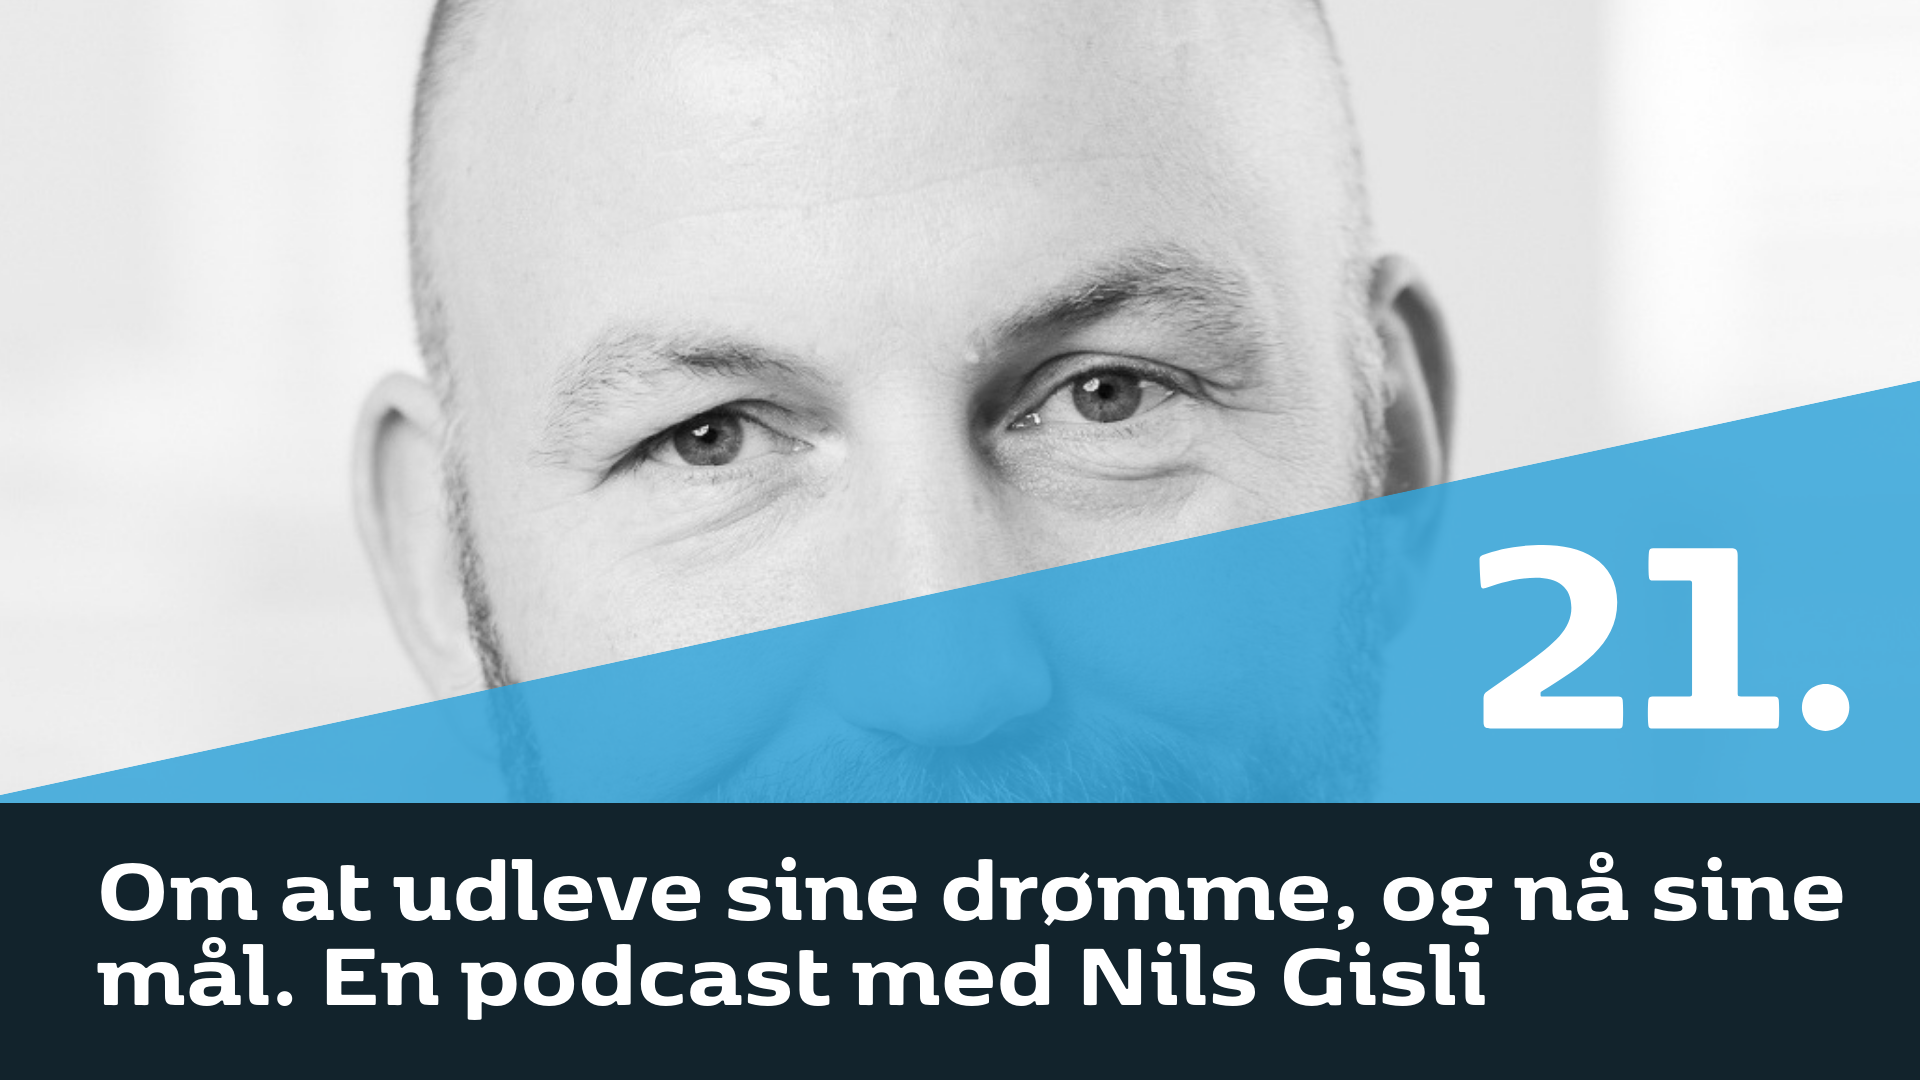 Nils Gisli podcast.png